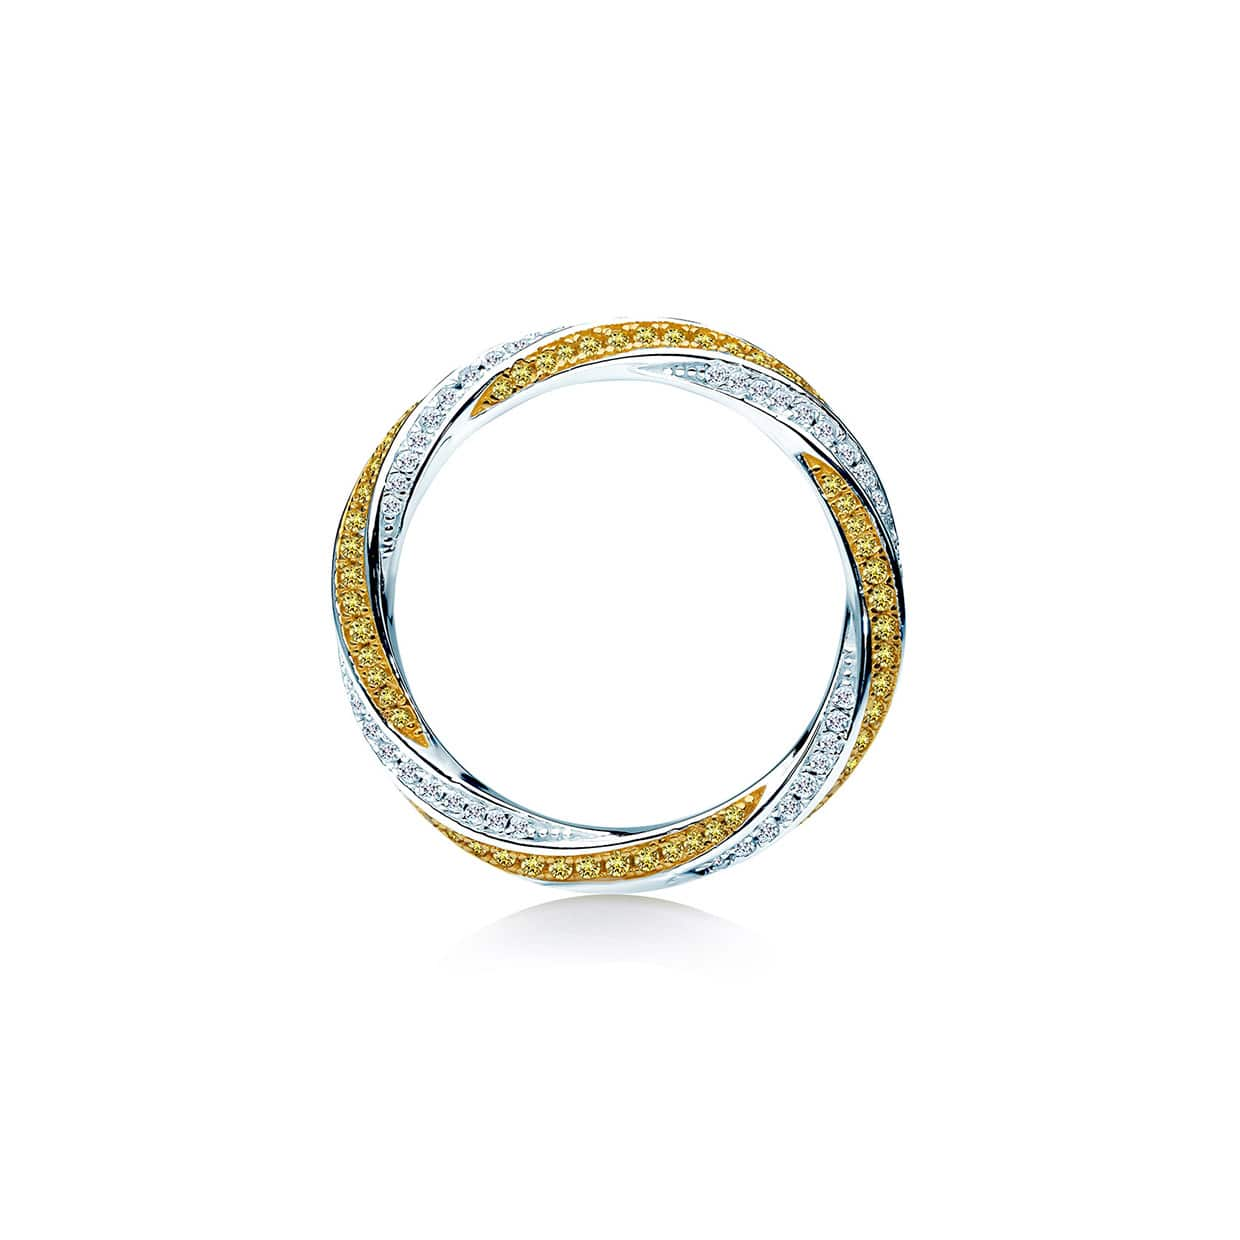 Sahara Twisted Yellow Stone Band Ring - Abelstedt